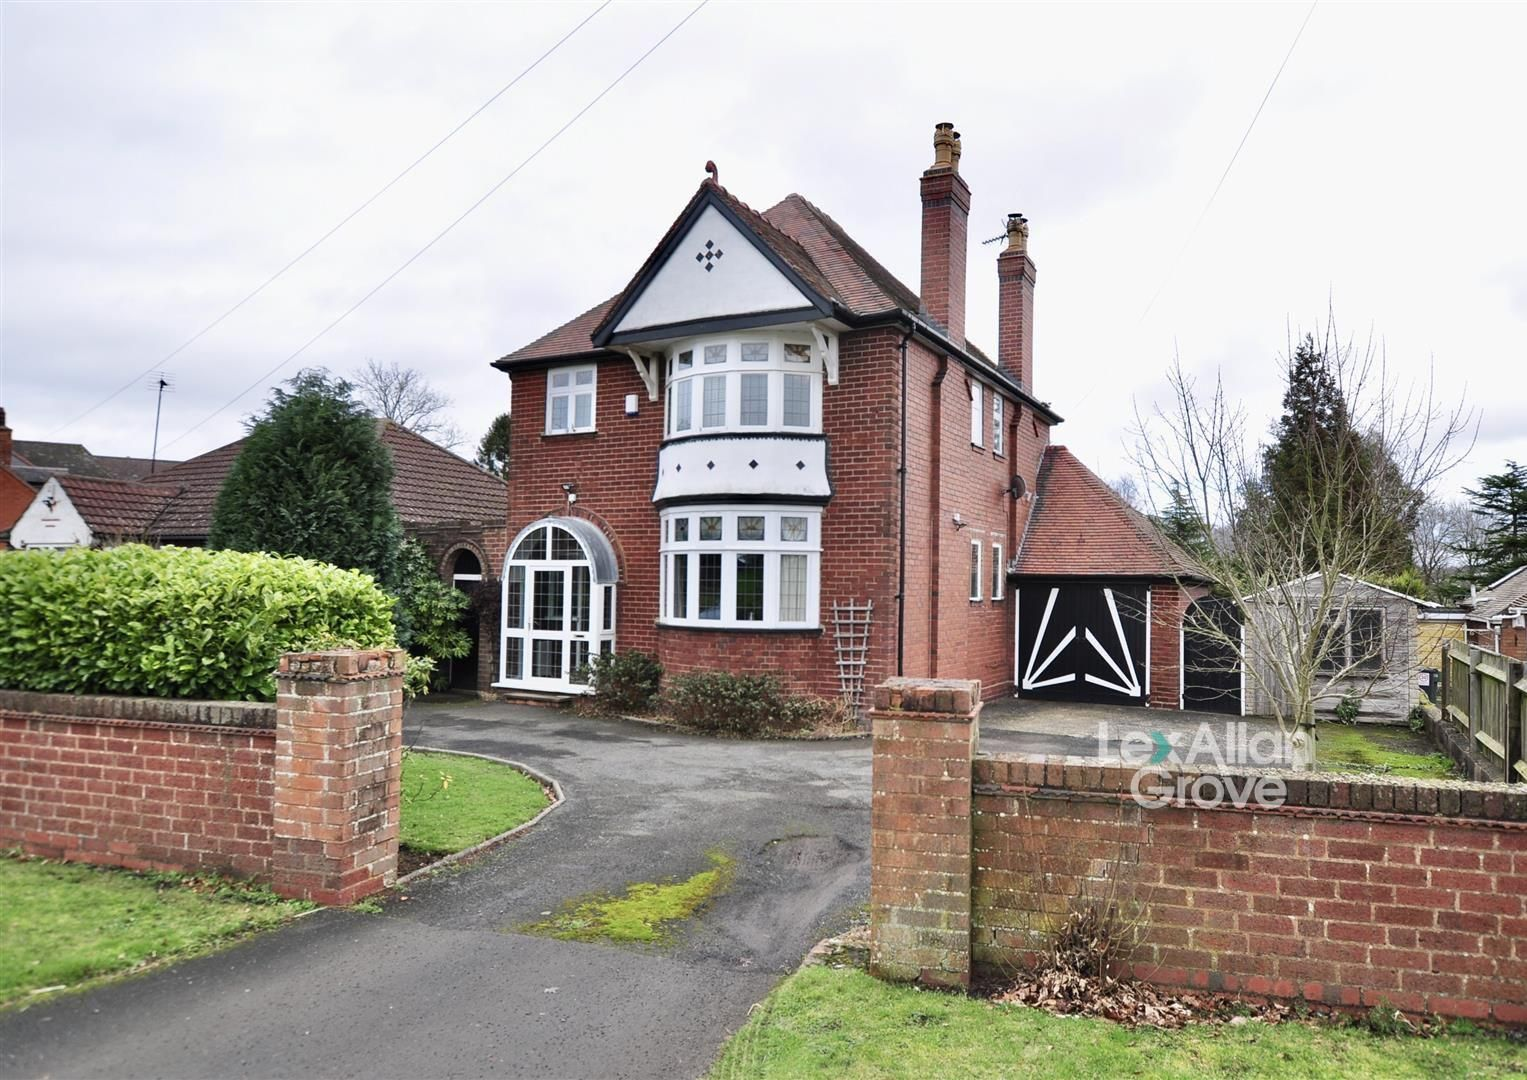 3 bed detached for sale in Hunnington, B62